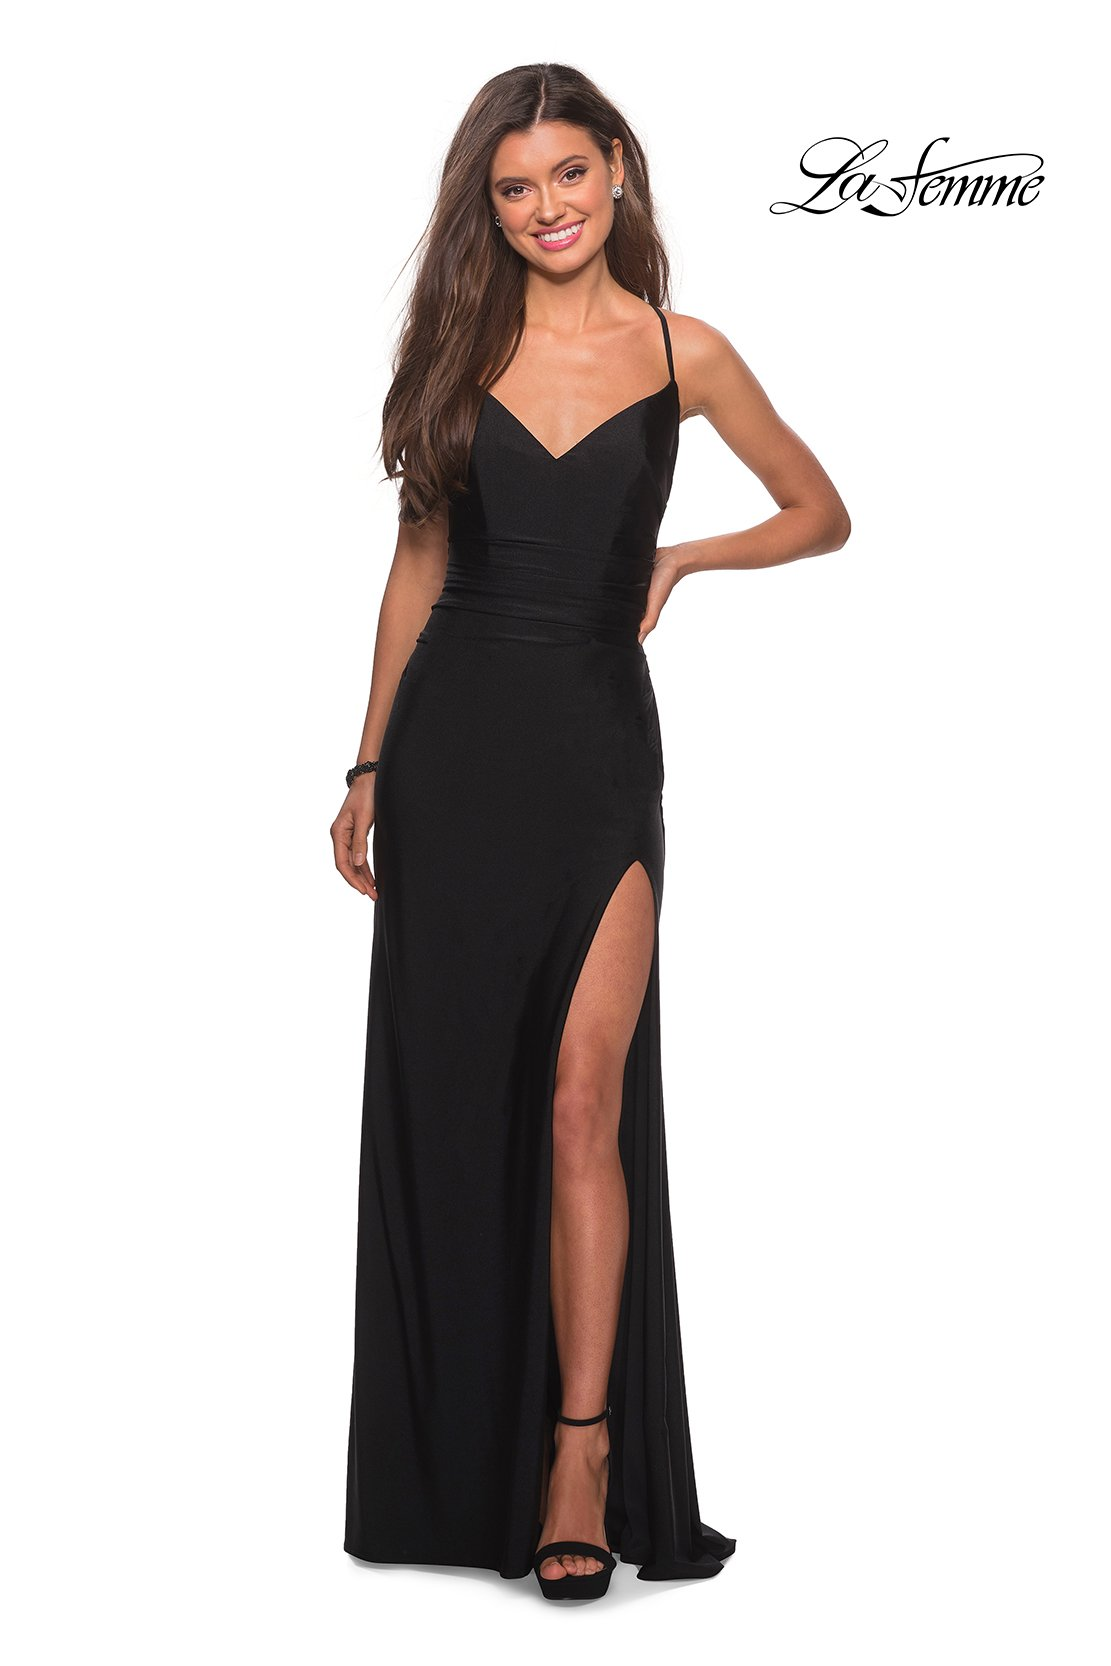 La Femme 28206 prom dress images.  La Femme 28206 is available in these colors: Black, Burgundy, Nude.